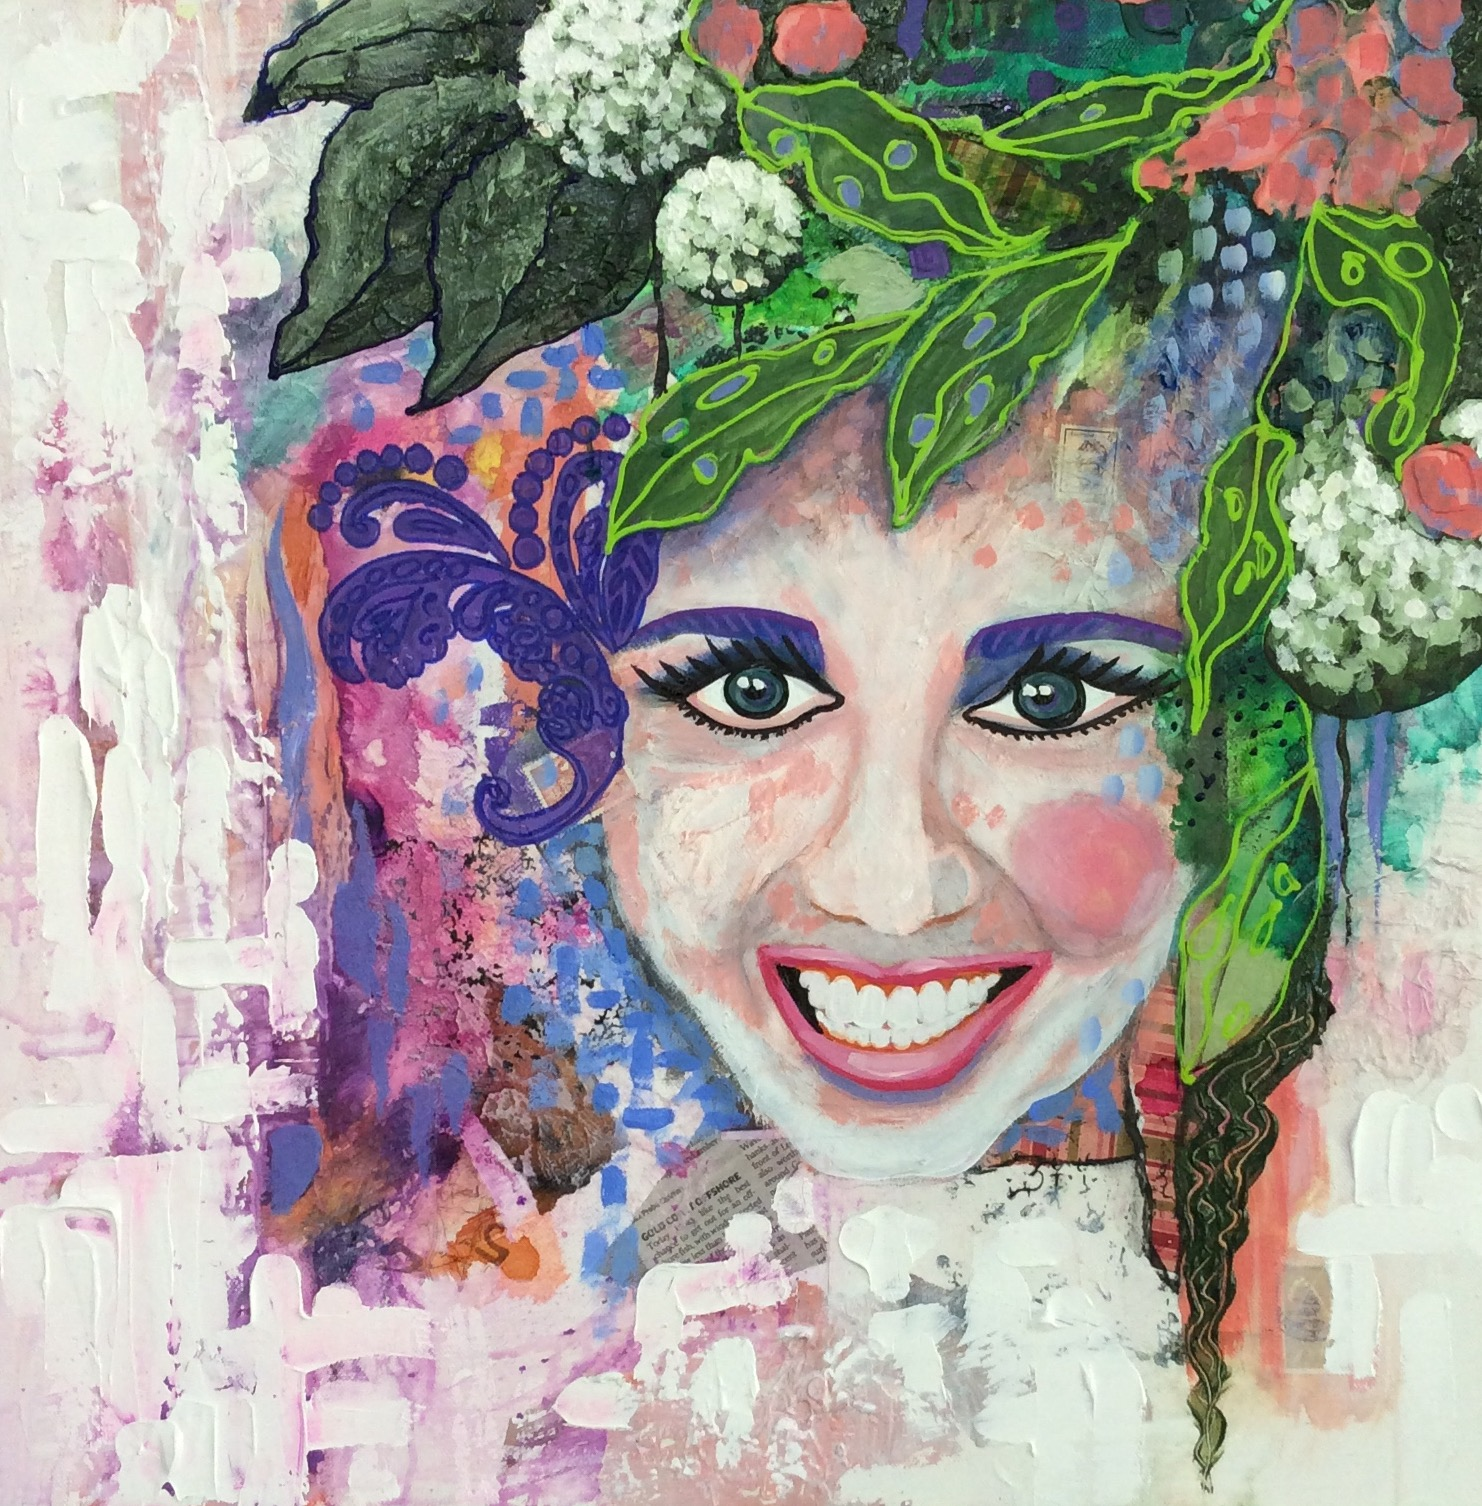 - Didi-A Self Portrait 51 x 51cm $320